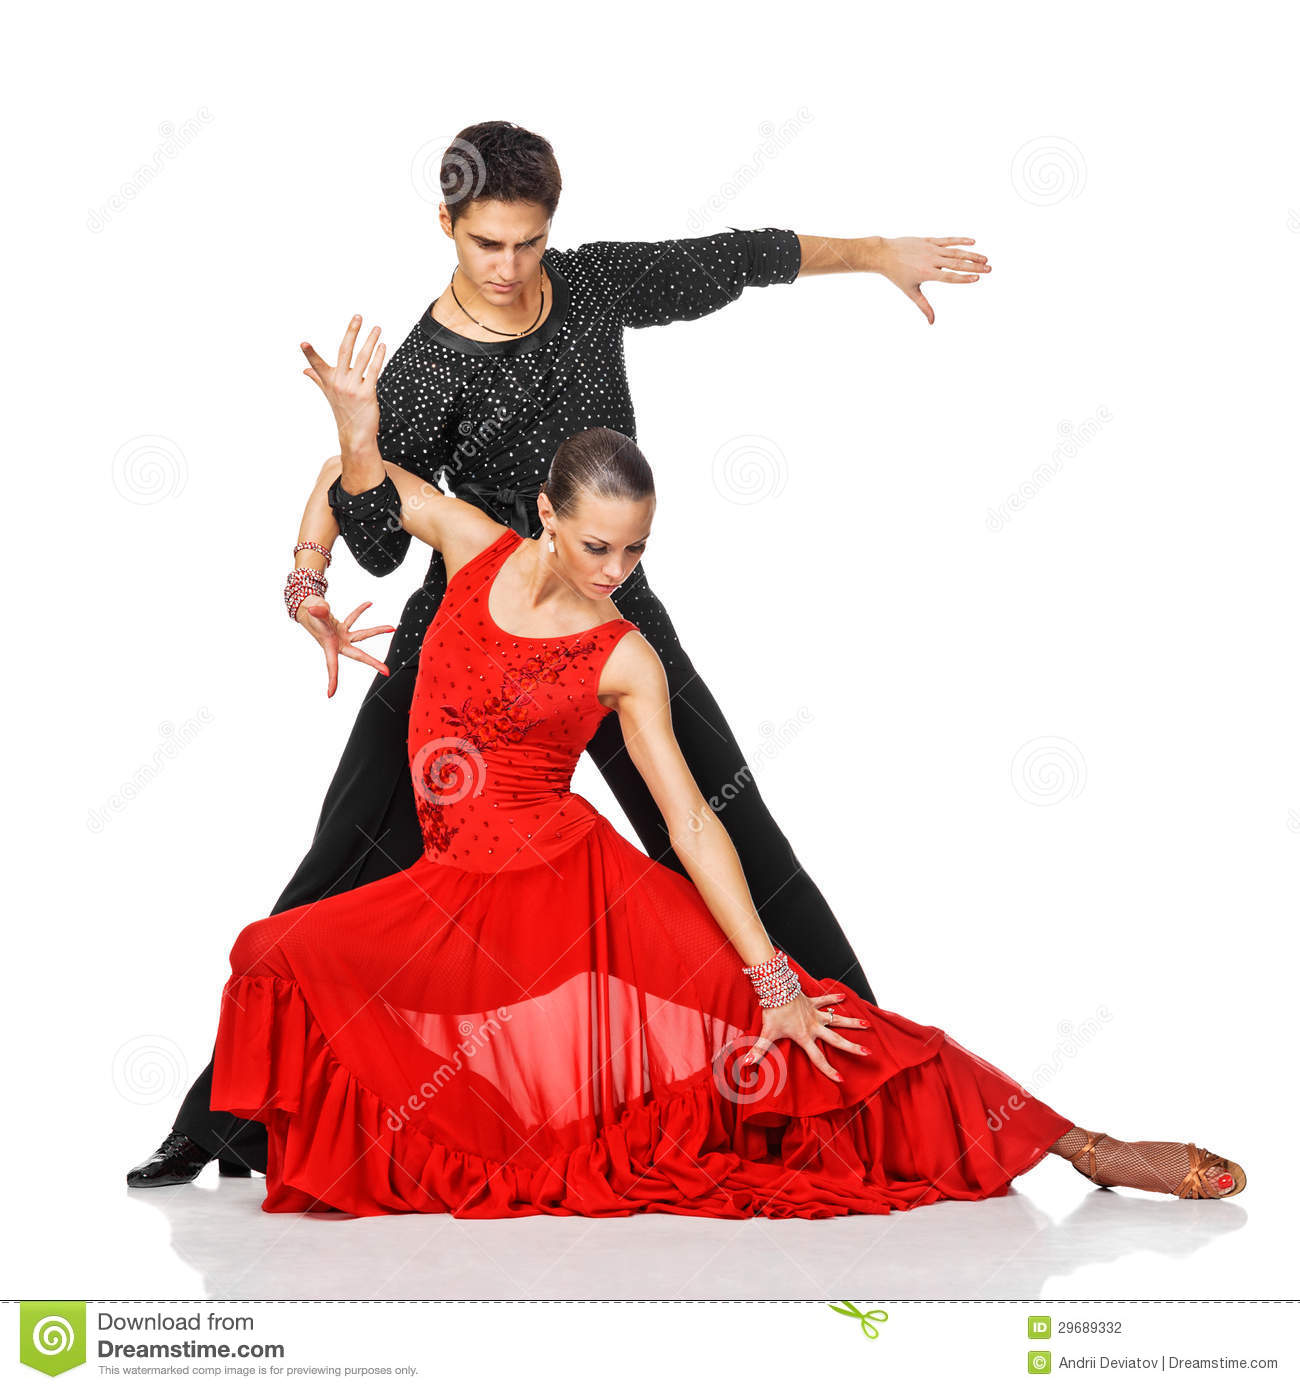 salsa sensuel de danse de couples danseurs latins dans l 39 action photo stock image du danseur. Black Bedroom Furniture Sets. Home Design Ideas